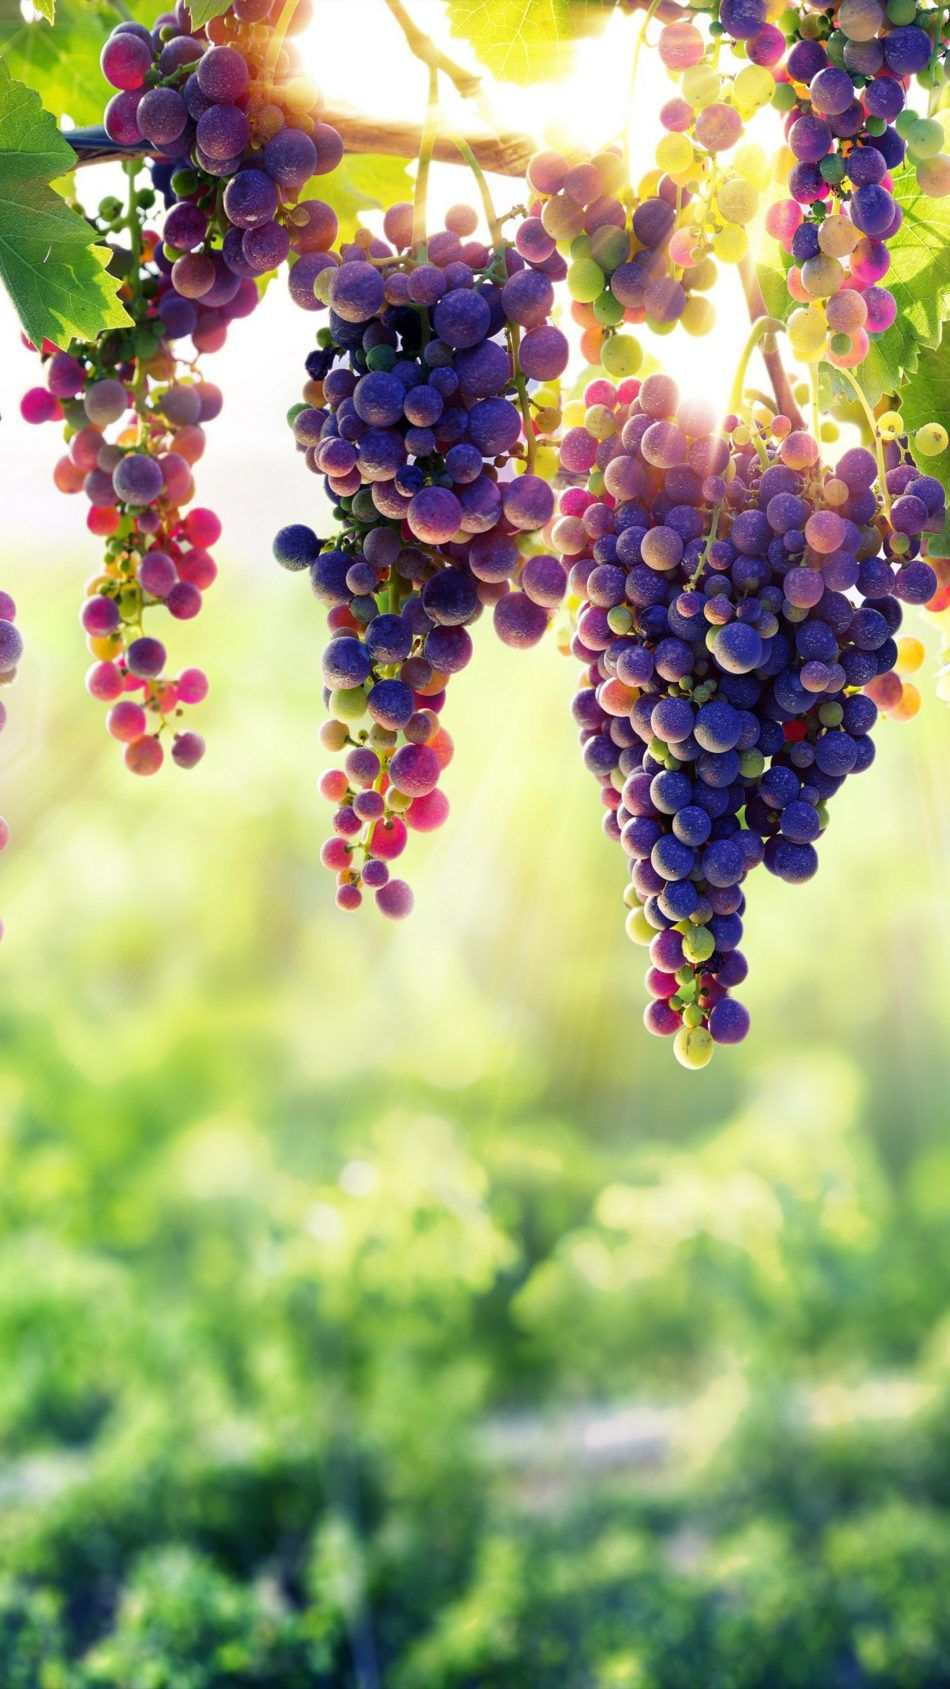 Grapes 4k Ultra Hd Mobile Wallpaper Fruit Wallpaper Grape Wallpaper 8k Wallpaper